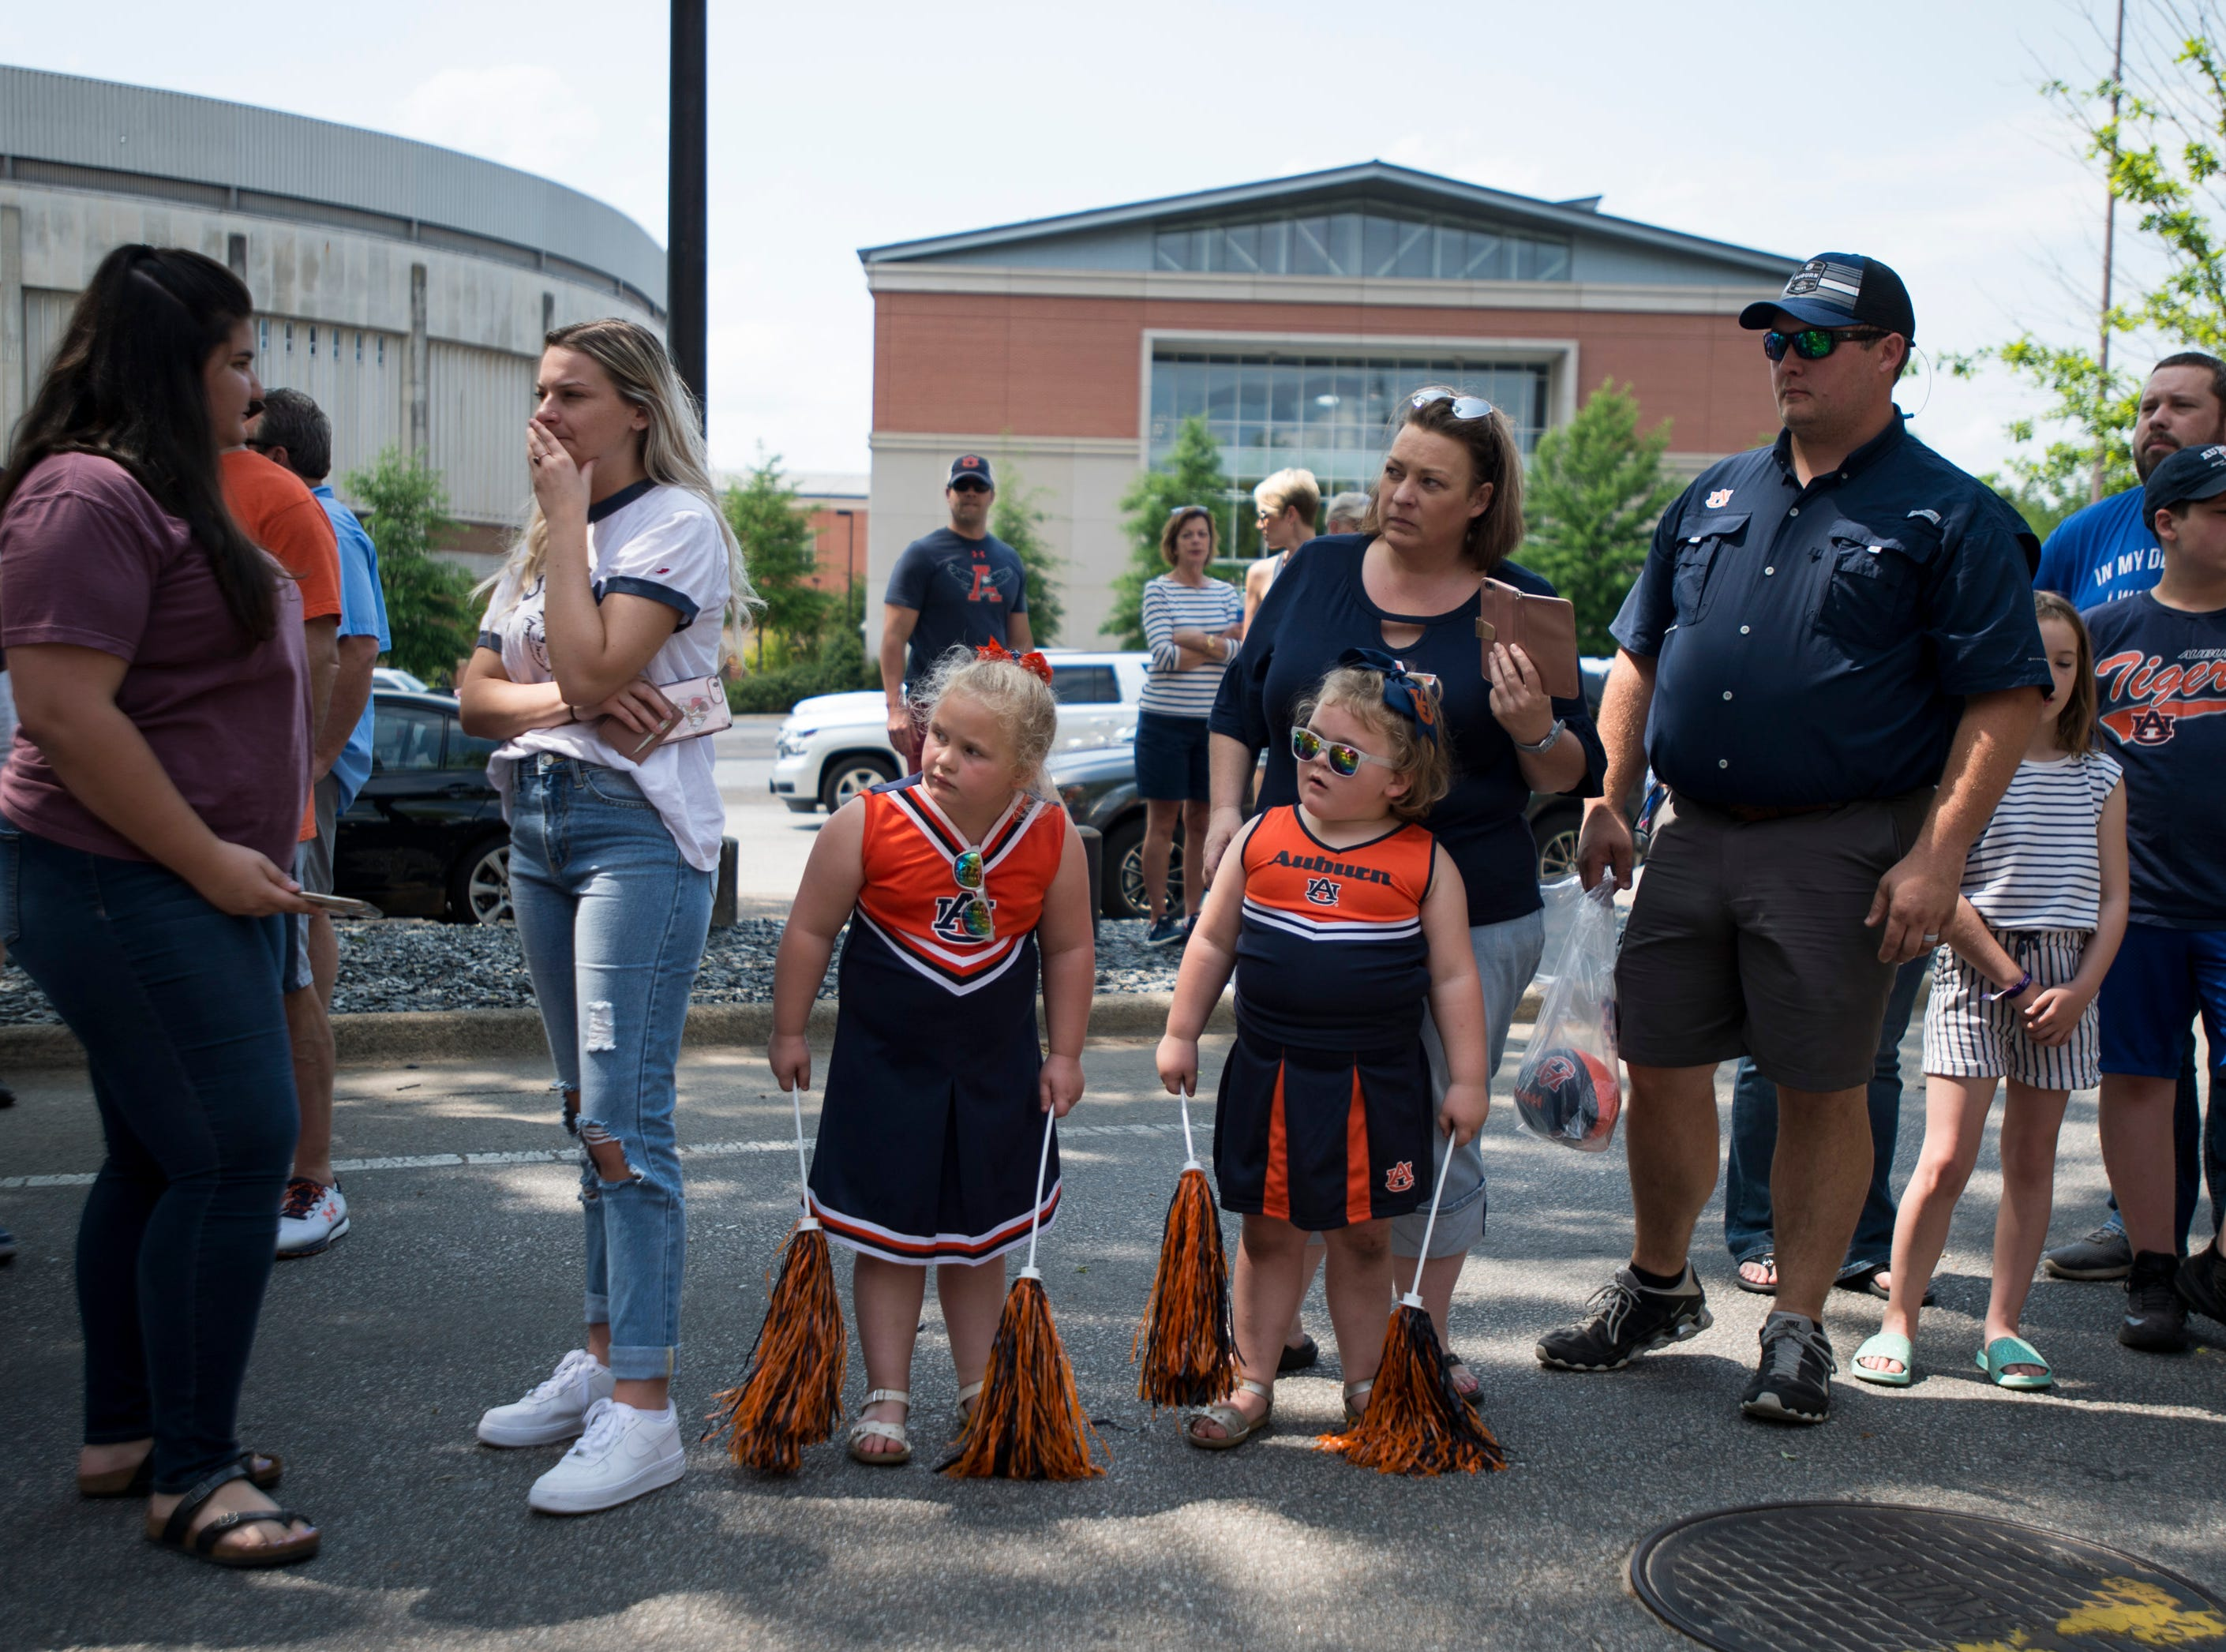 Fans wait for the team during the Tiger Walk before the A-Day spring practice gameat Jordan-Hare Stadium in Auburn, Ala., on Saturday, April 13, 2019.